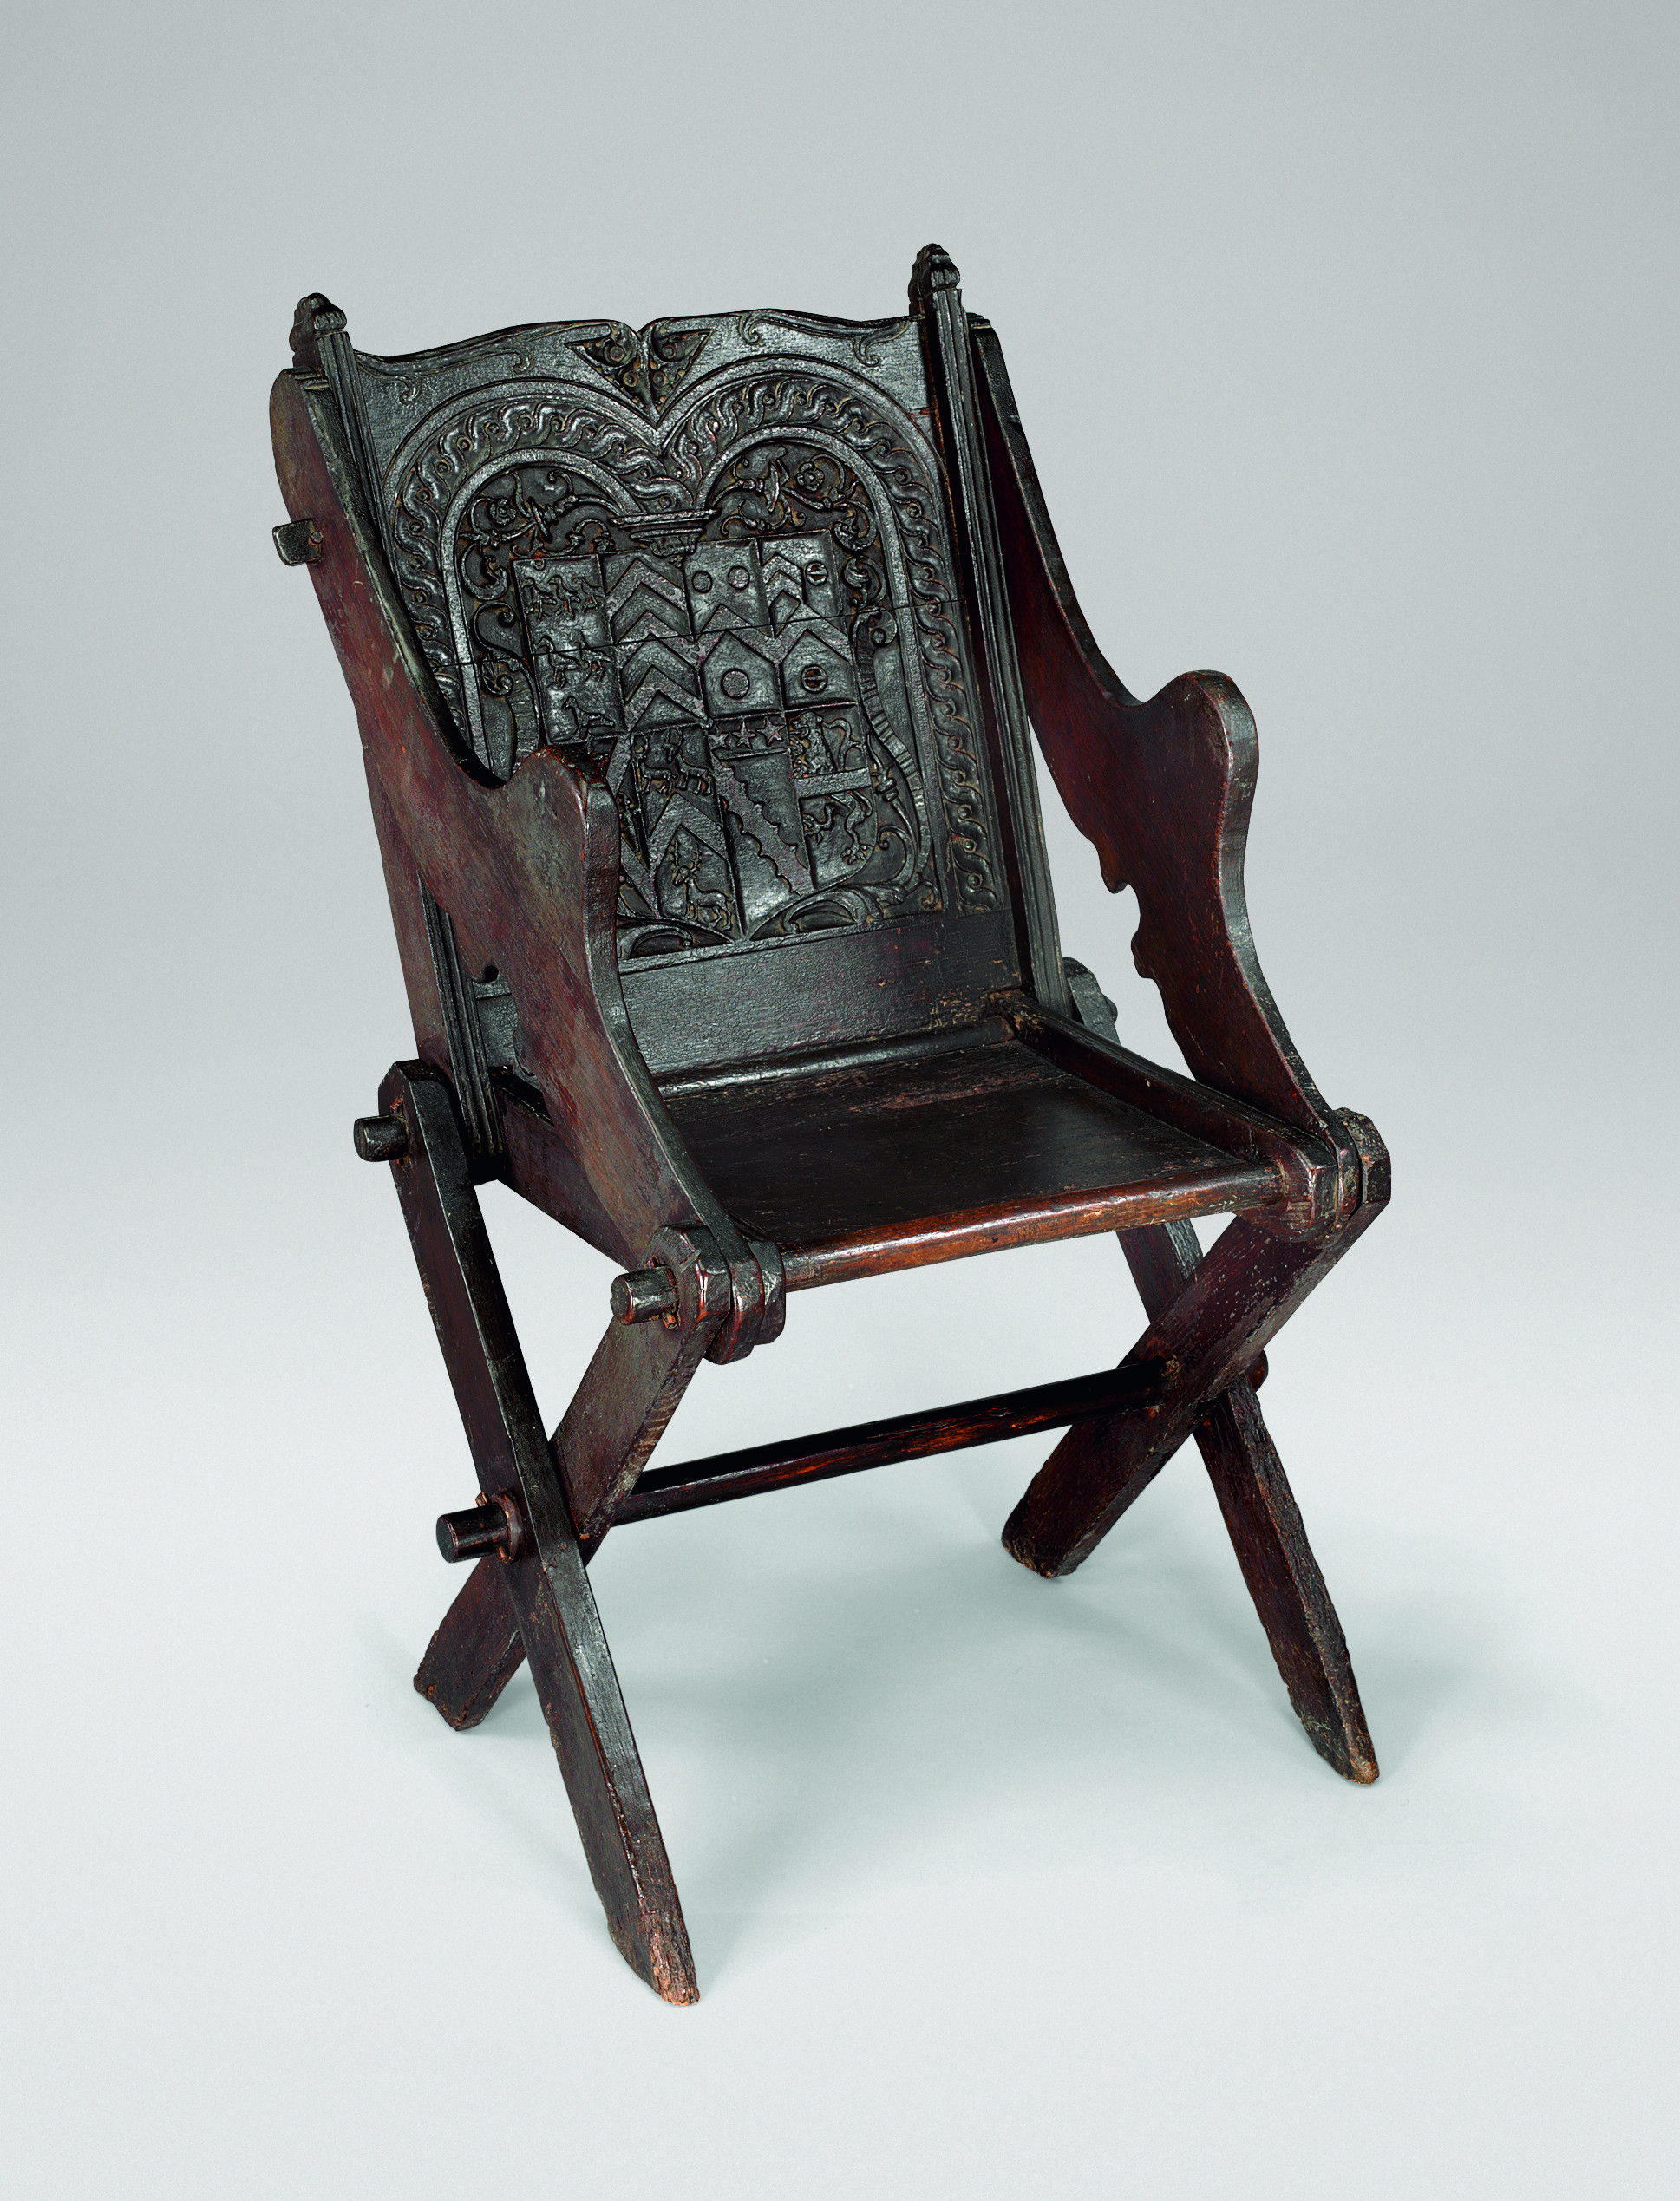 Glastonbury chair 16th century medieval chairs for Medieval living room furniture